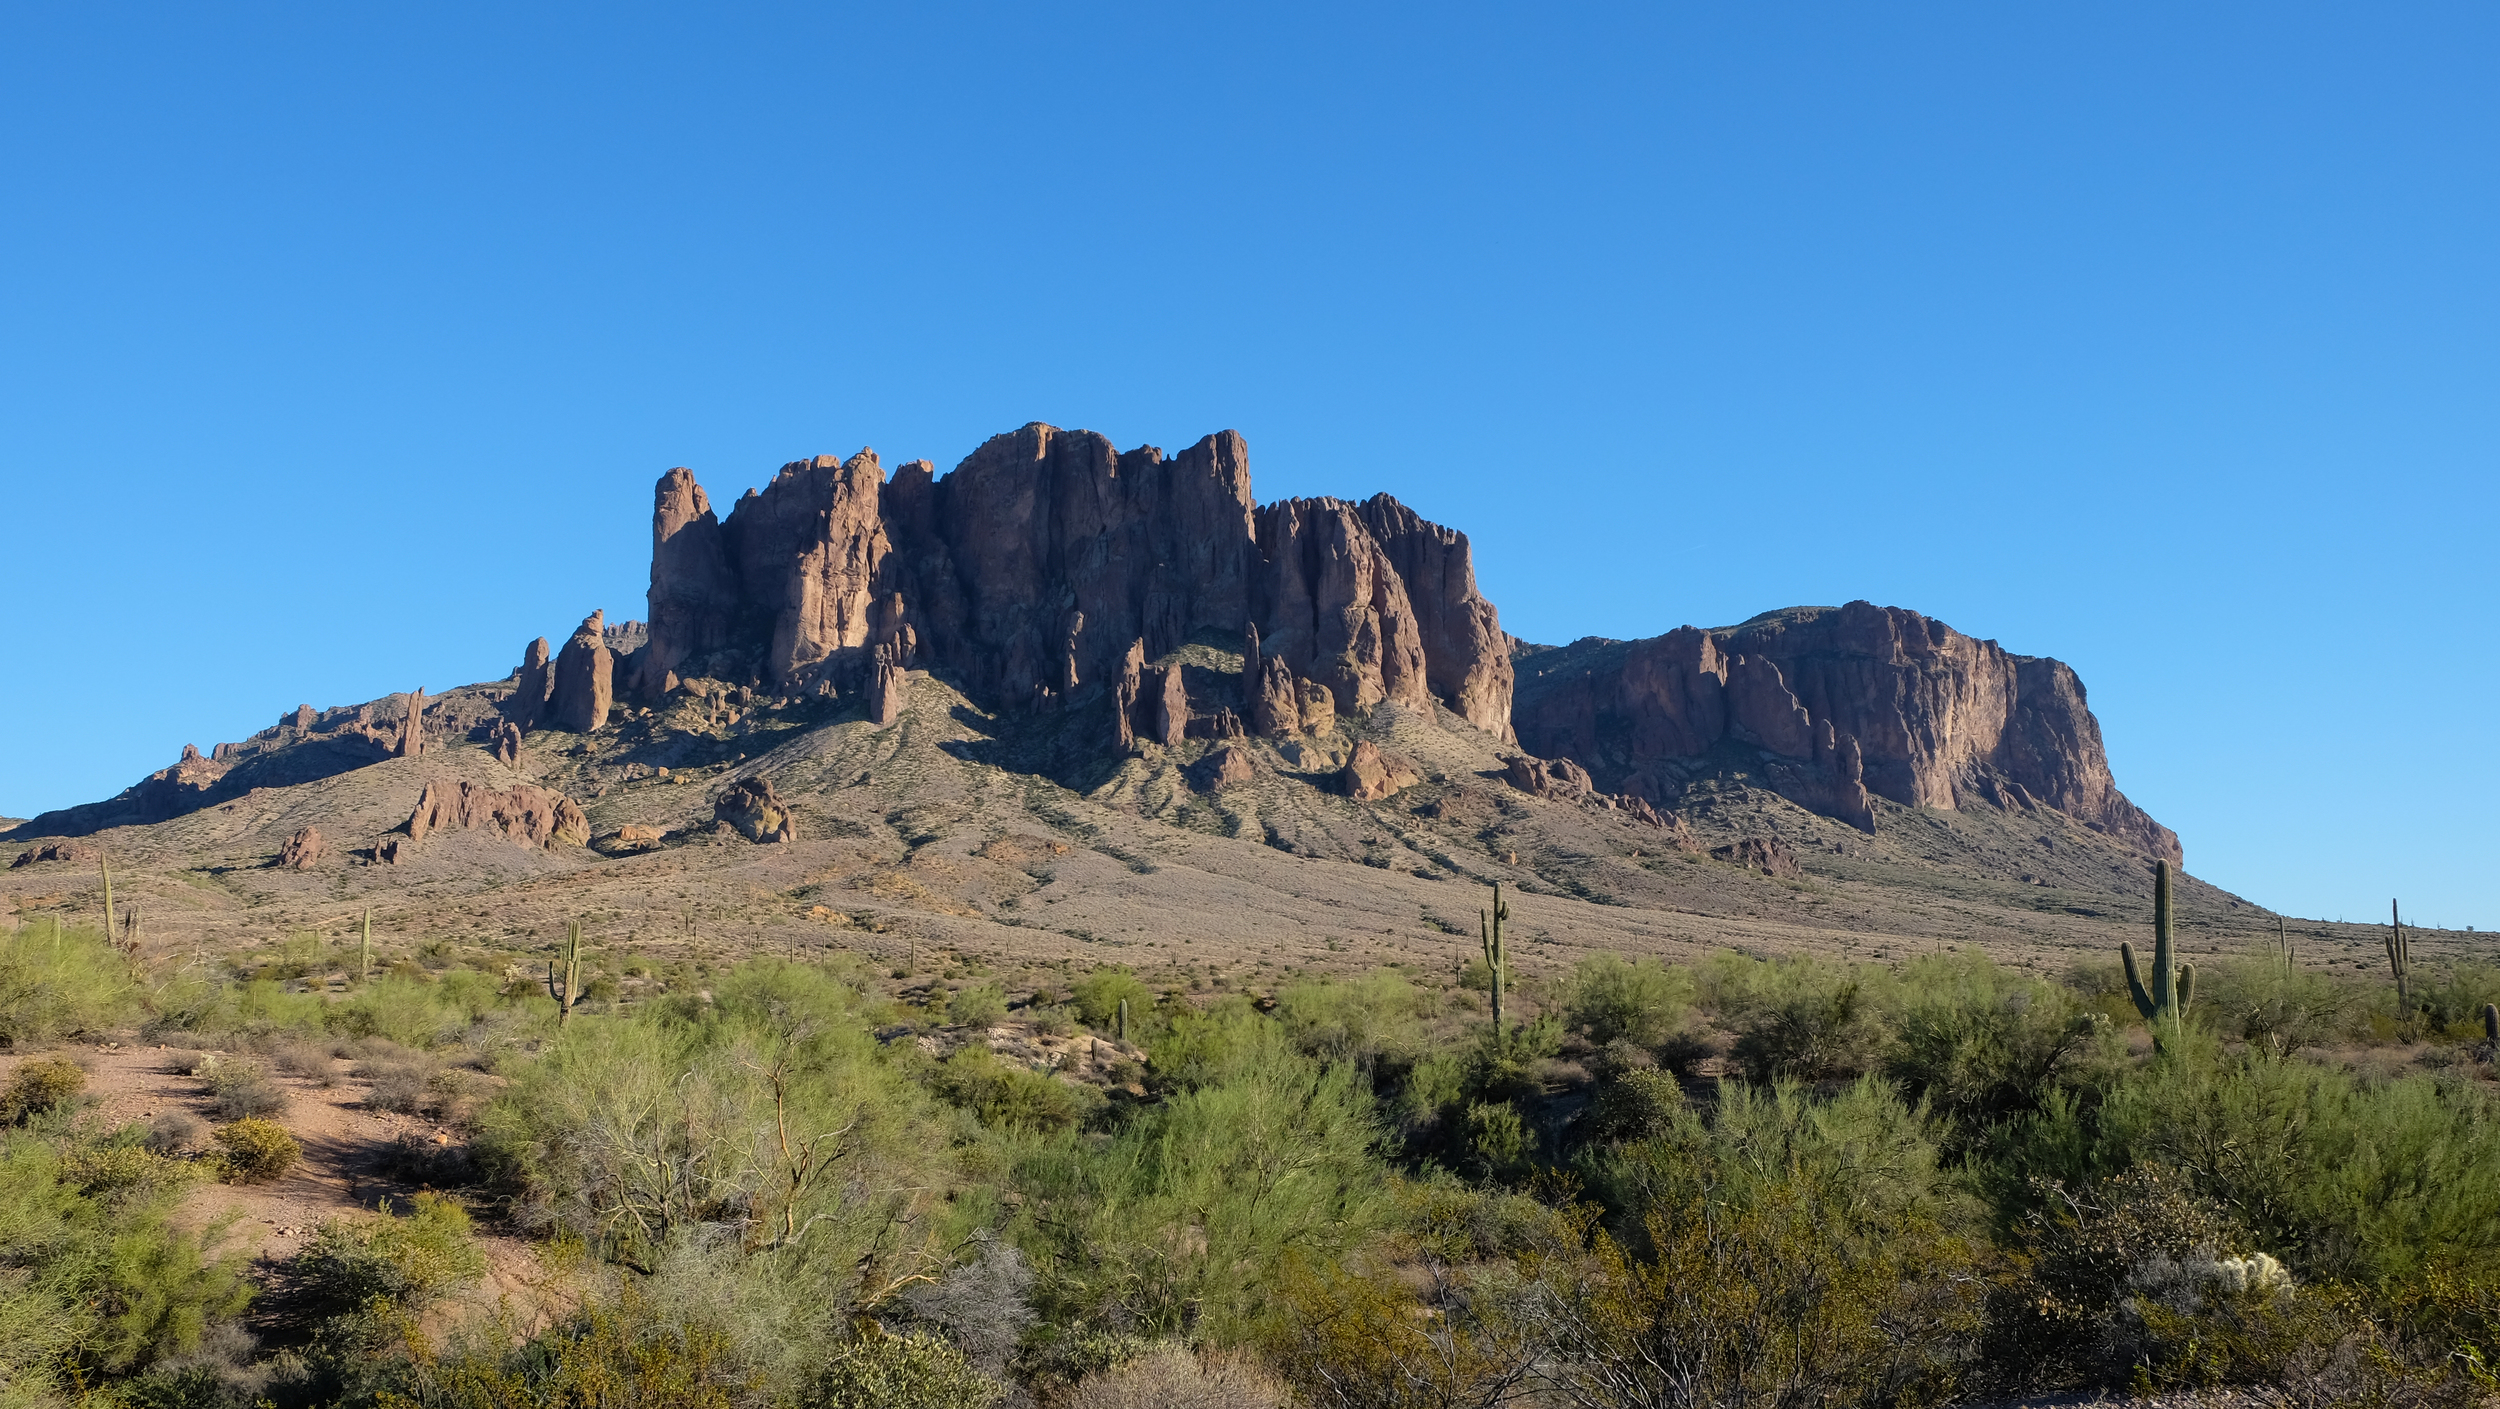 Took this image while doing some research in the Superstition Mountains.